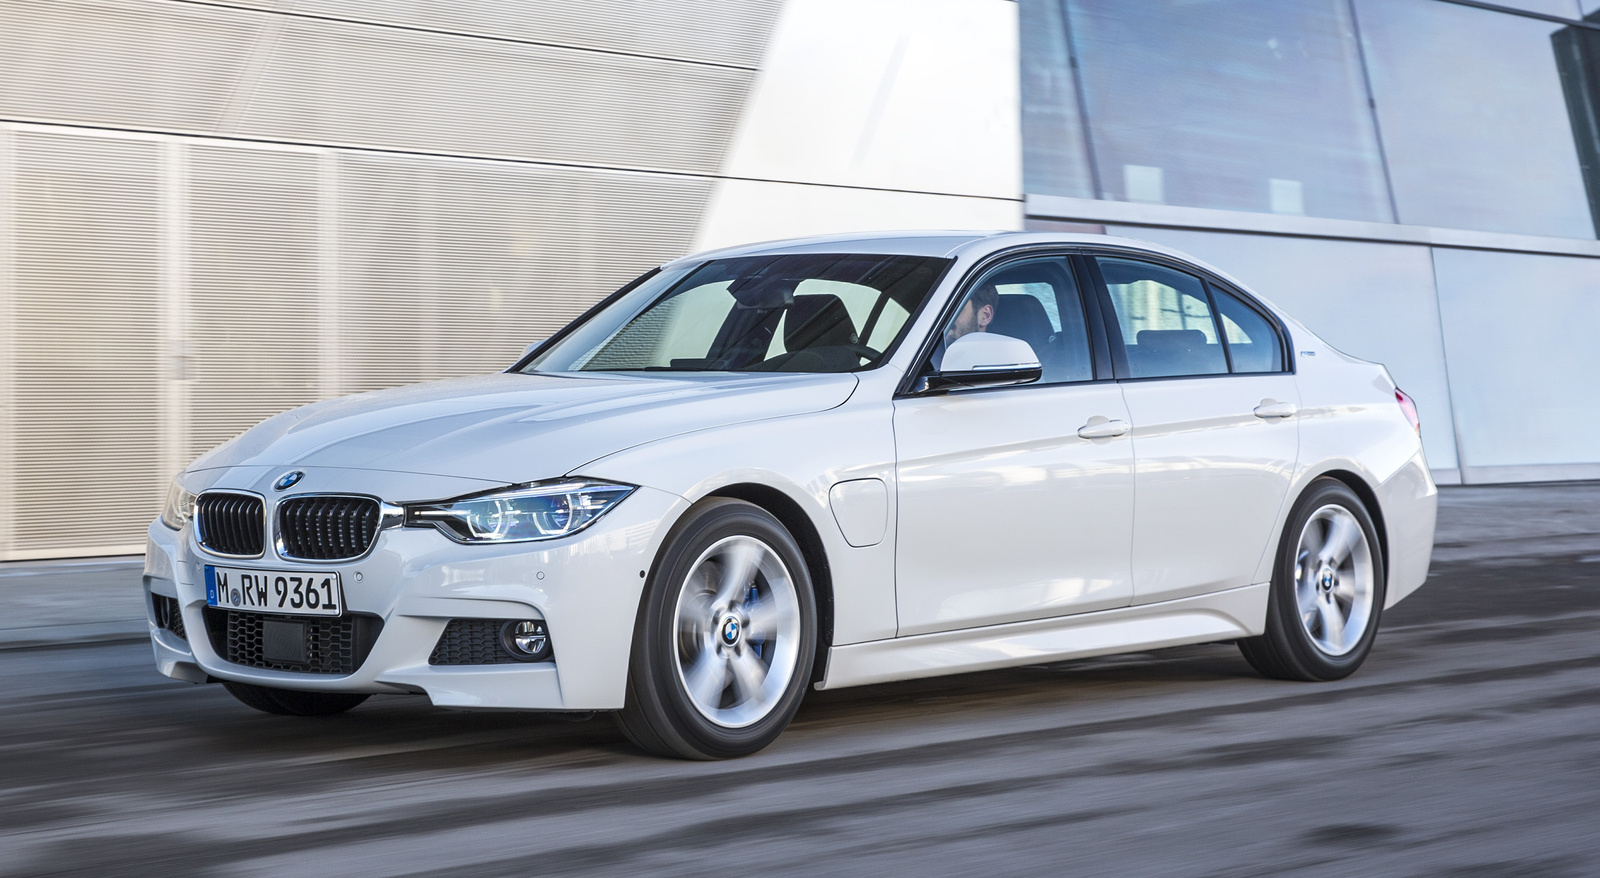 BMW 3 series Specifications, Price, Mileage, Pics, Review